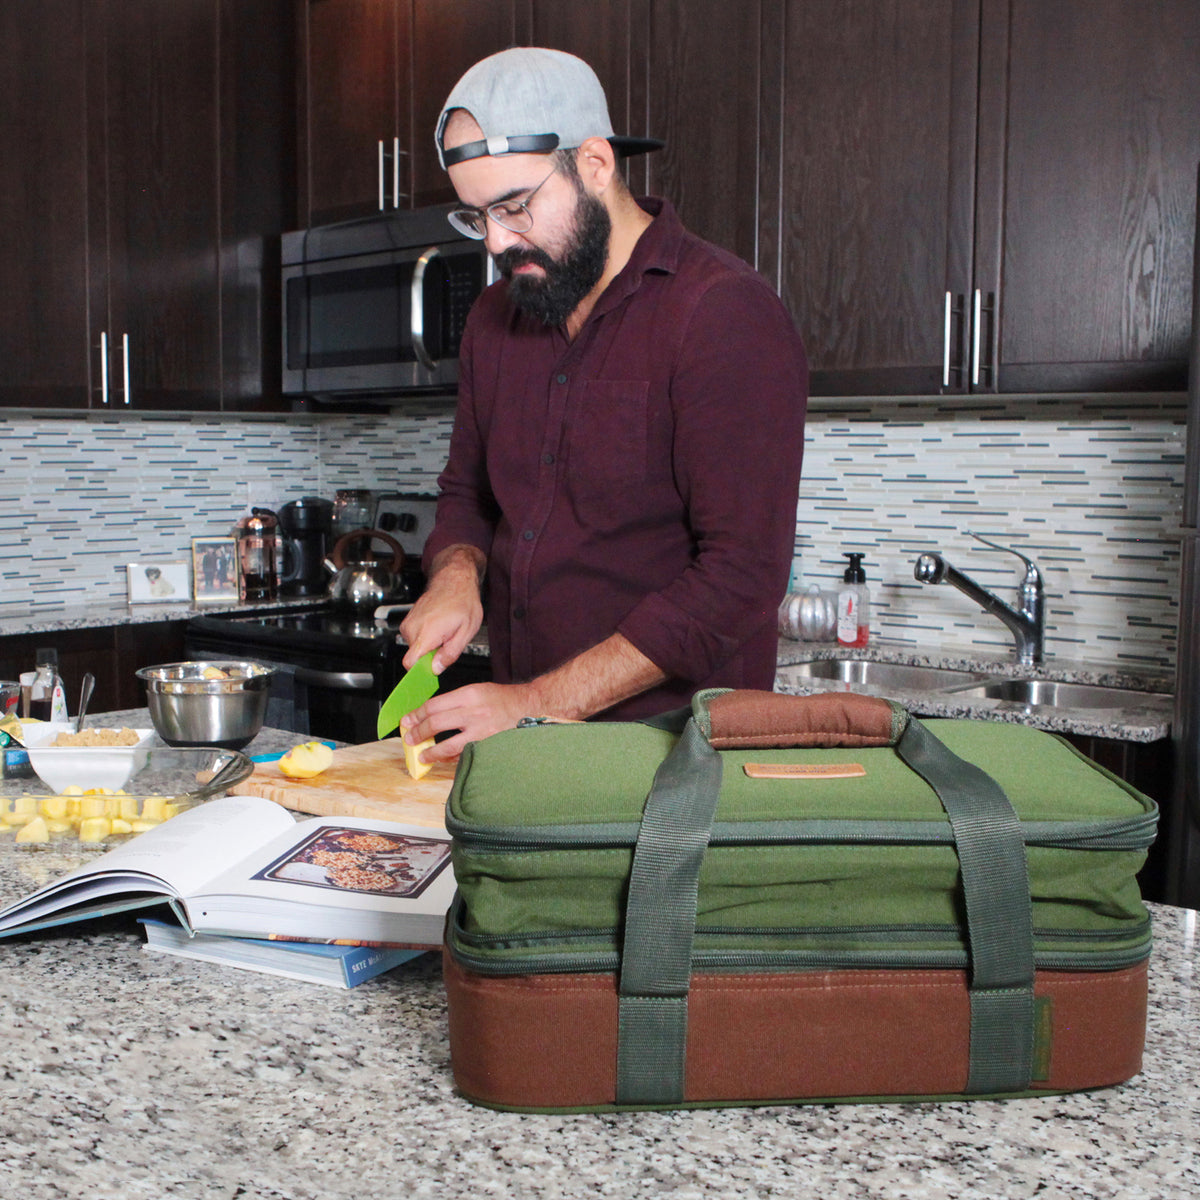 Food Pro Expandable Thermal Carrier - Lifestyle baking